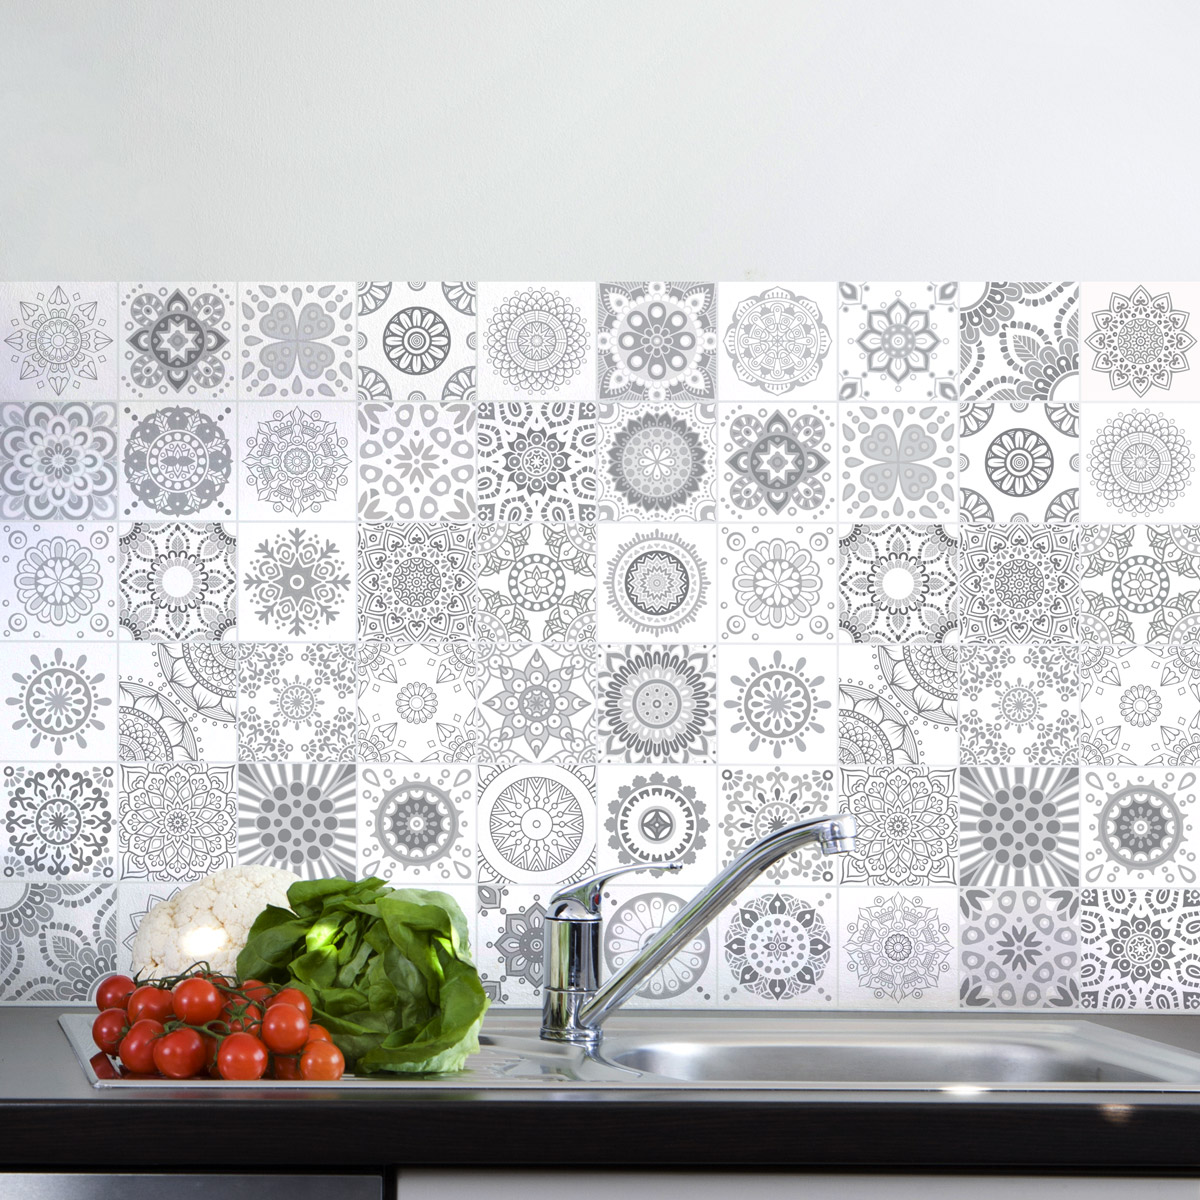 60 stickers carrelages azulejos design nuance de gris for Stickers carrelage cuisine 15x15